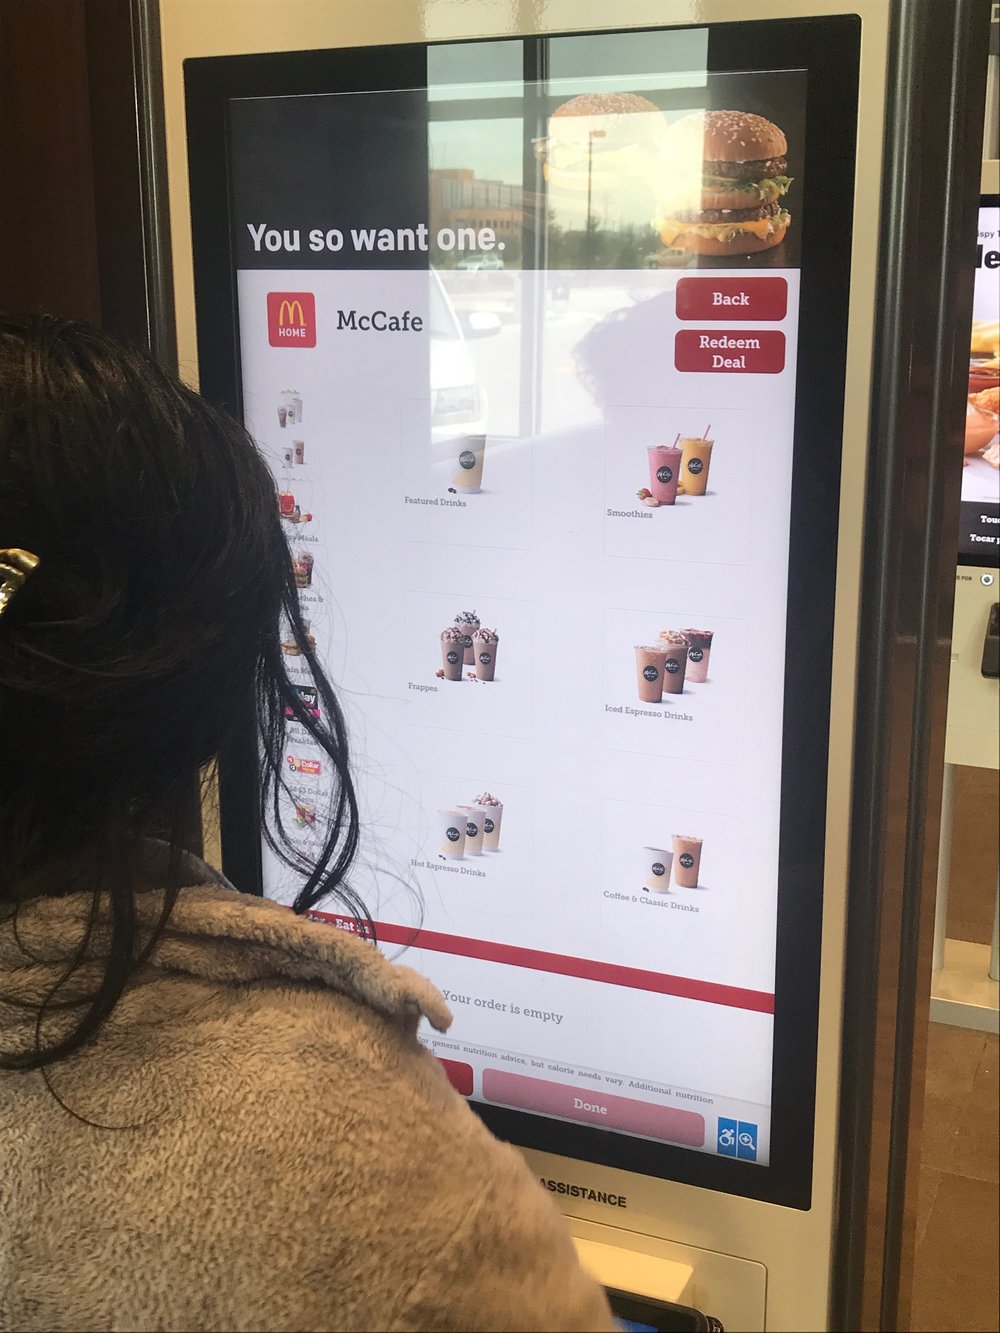 Easy Orders - McDonald's Kiosks